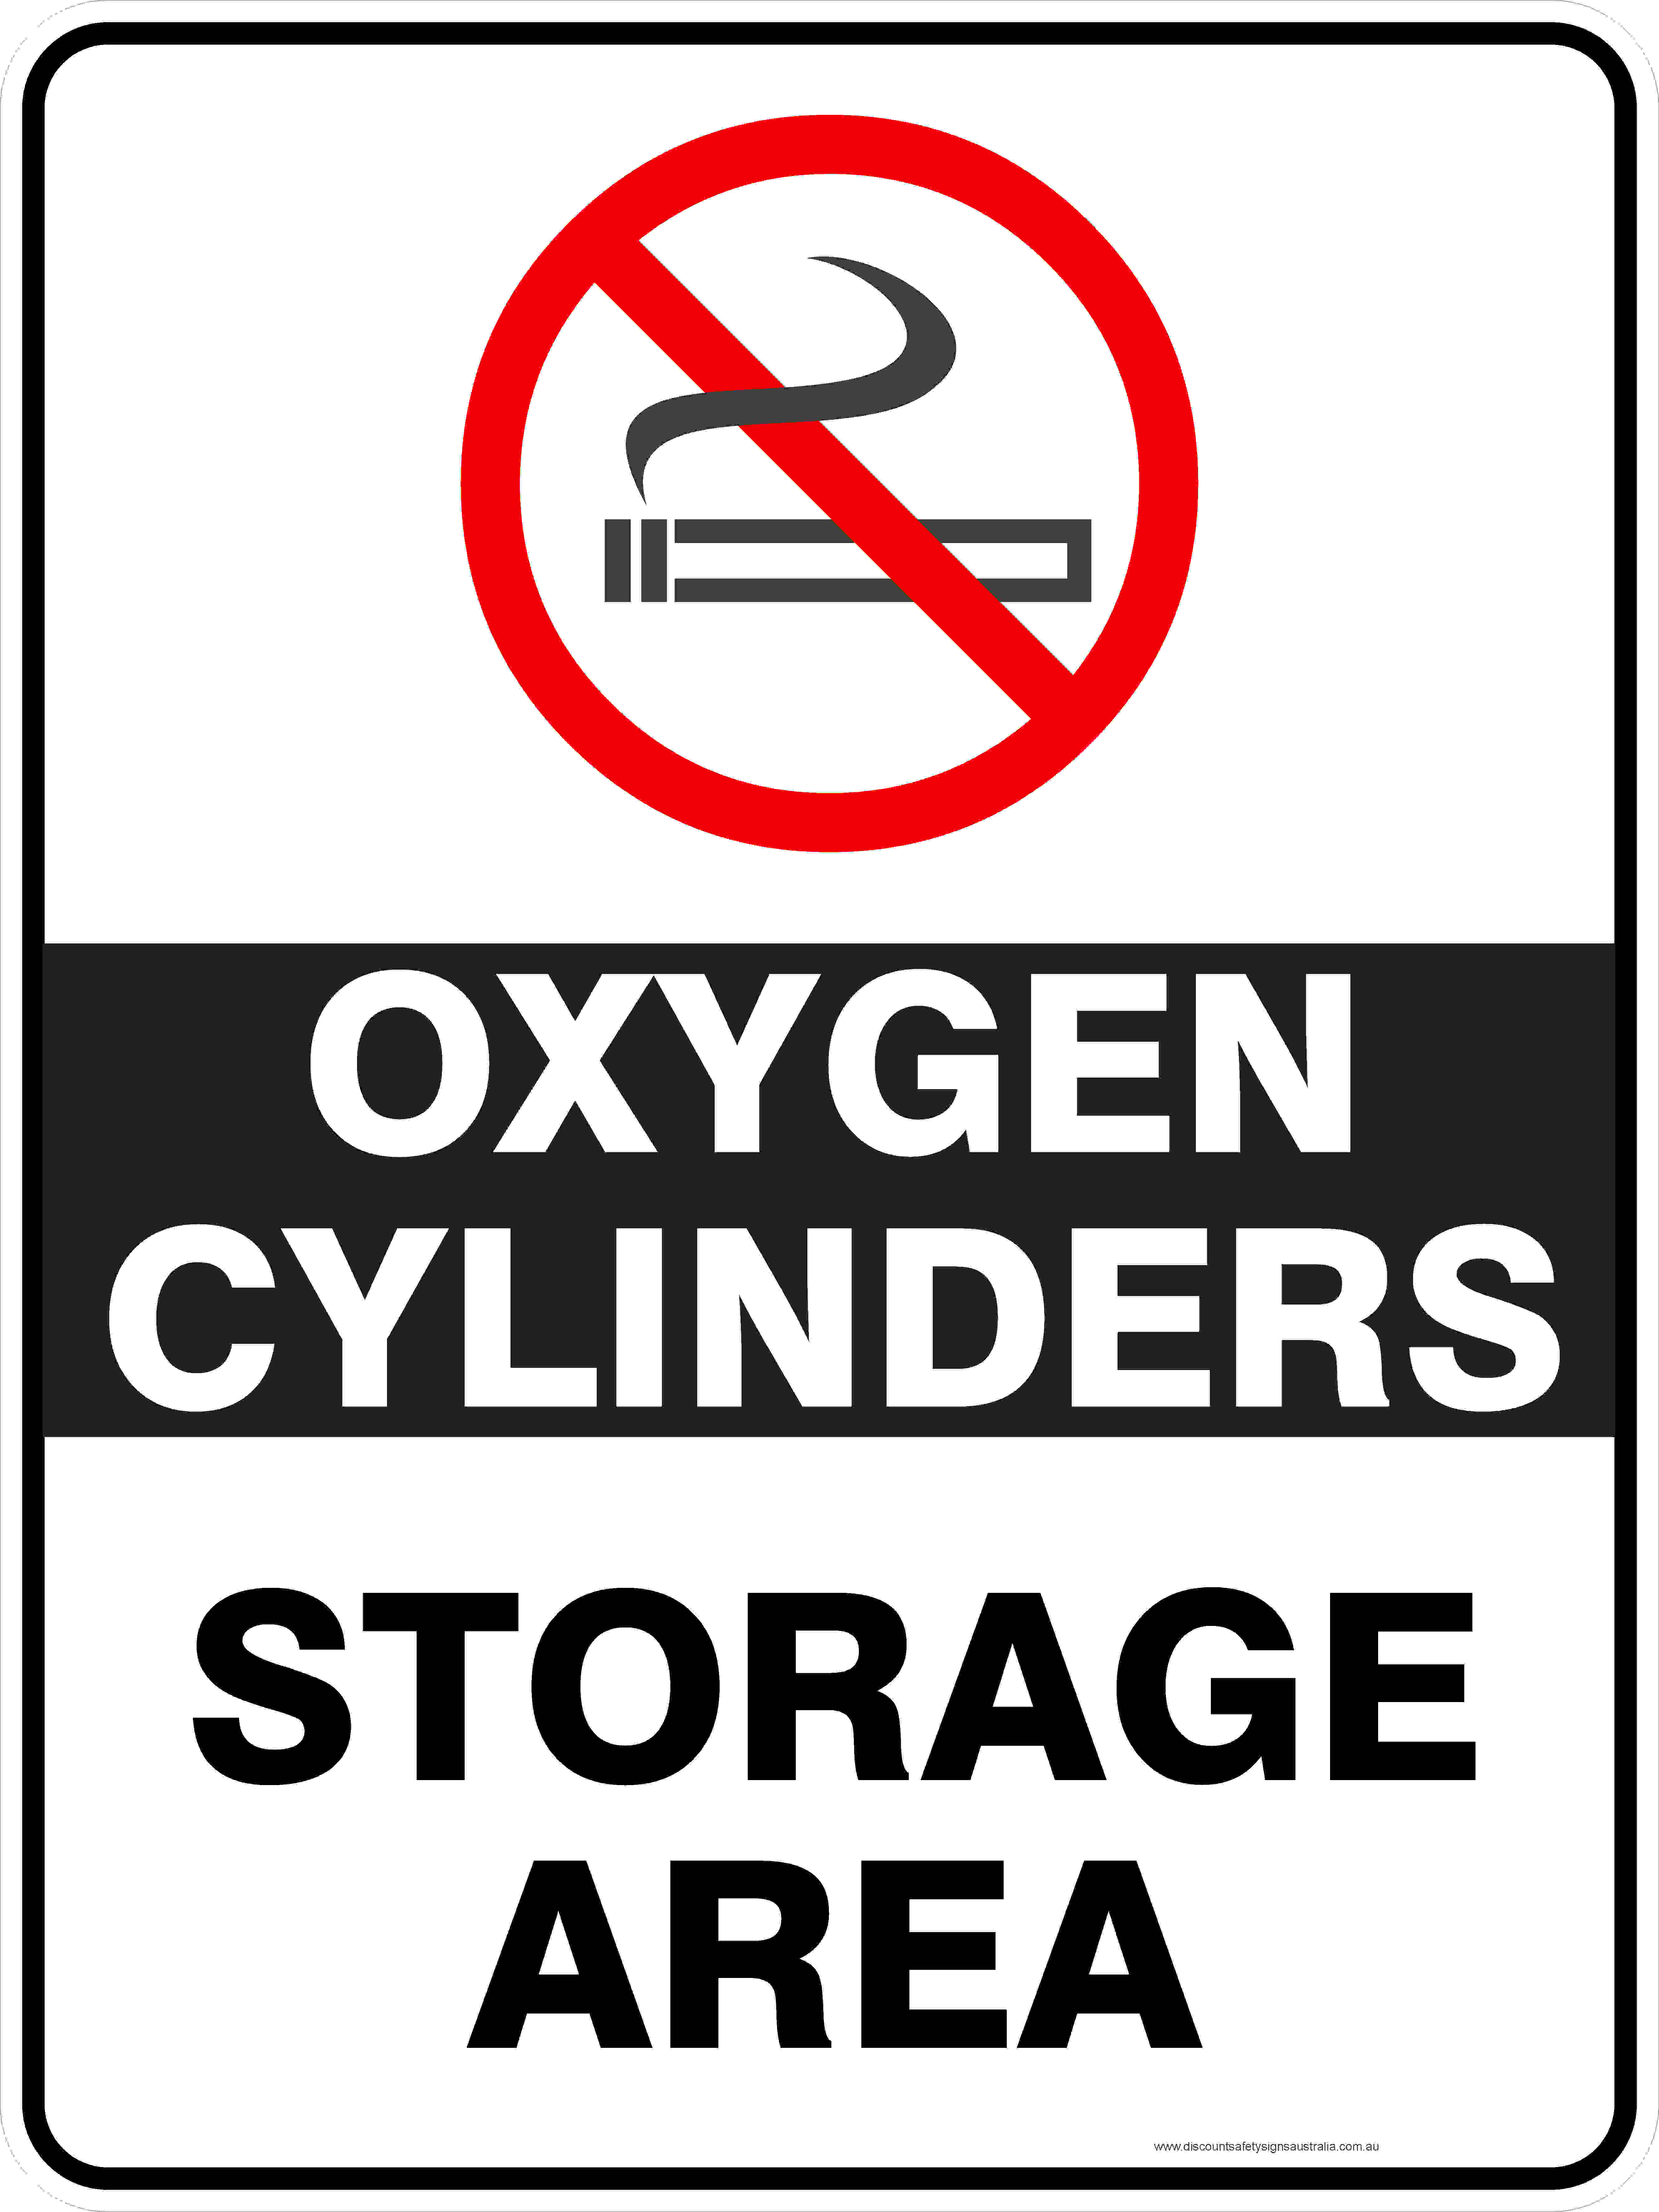 Prohibition Signs OXYGEN CYLINDERS STORAGE AREA